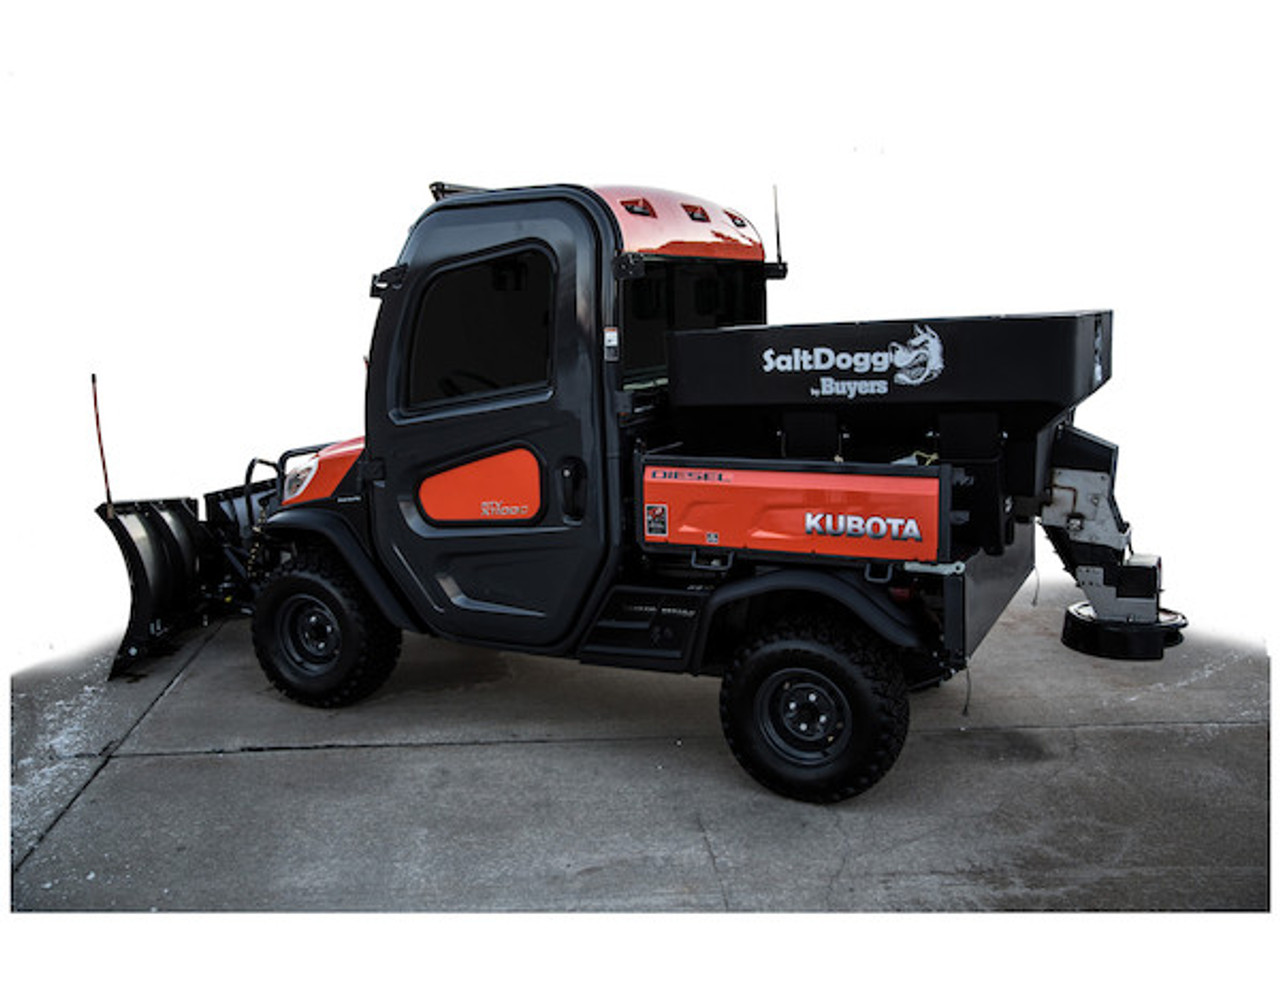 SHPE0750 BUYERS SALTDOGG ELECTRIC POLY HOPPER SPREADER